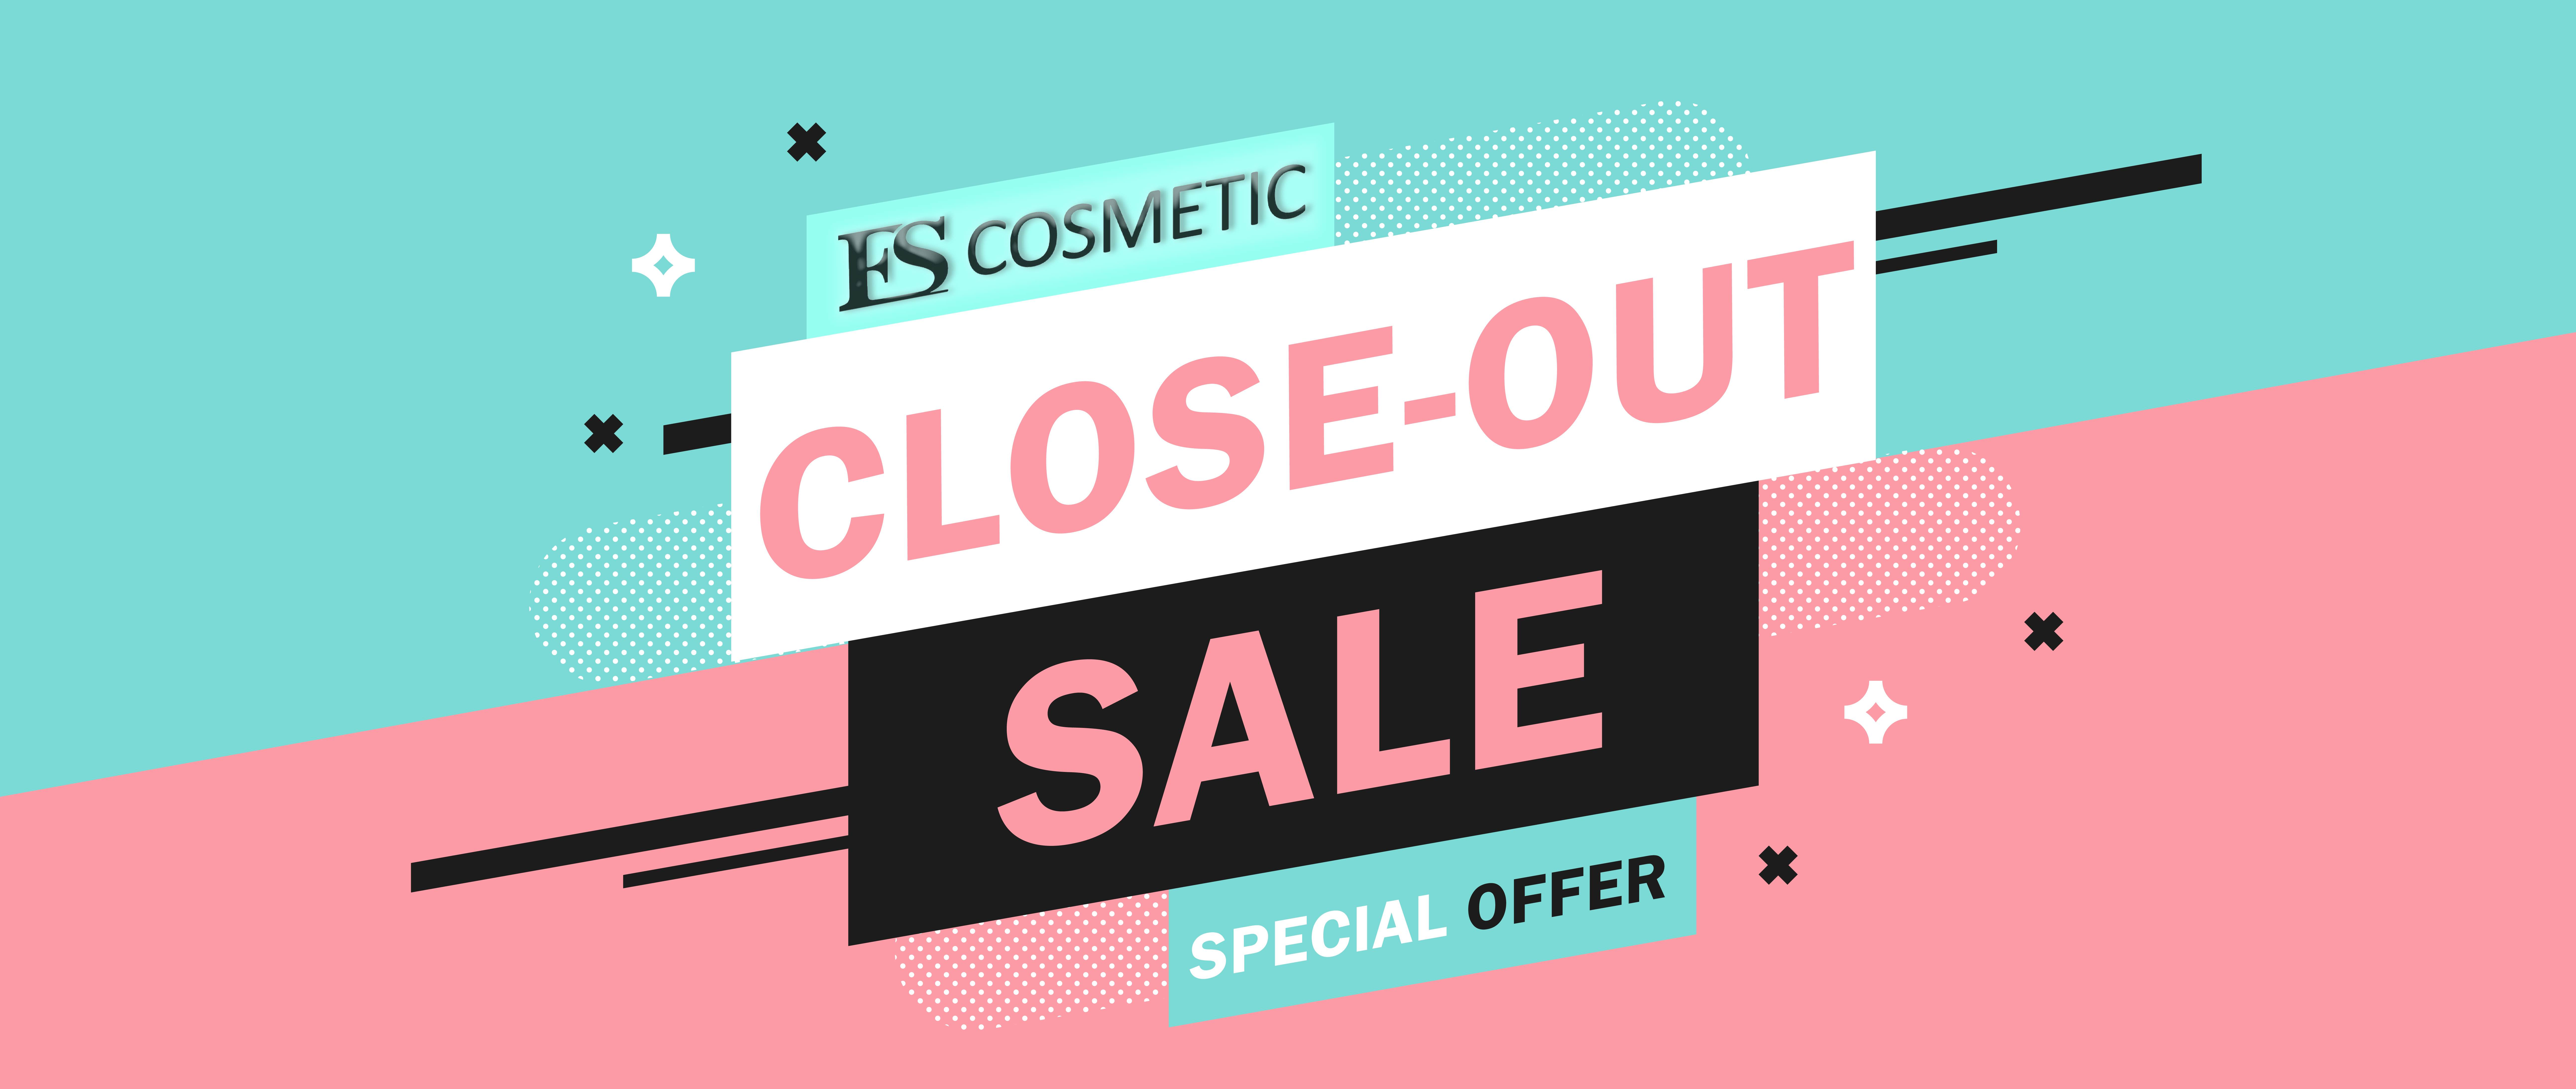 es-cosmetic-close-out.jpg